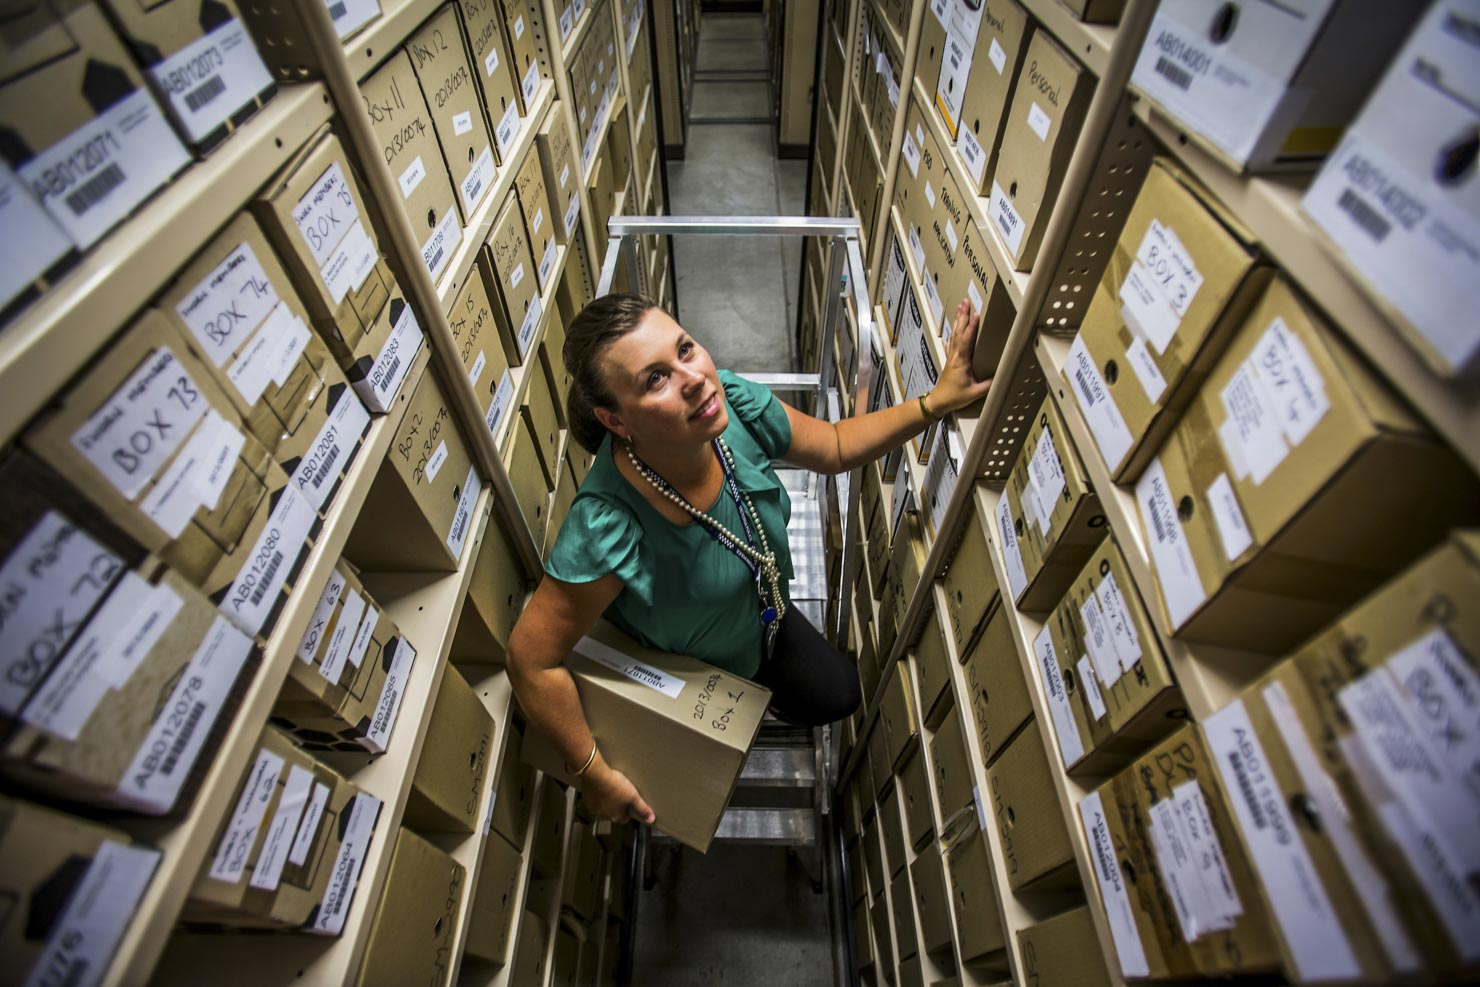 A worker with document archives